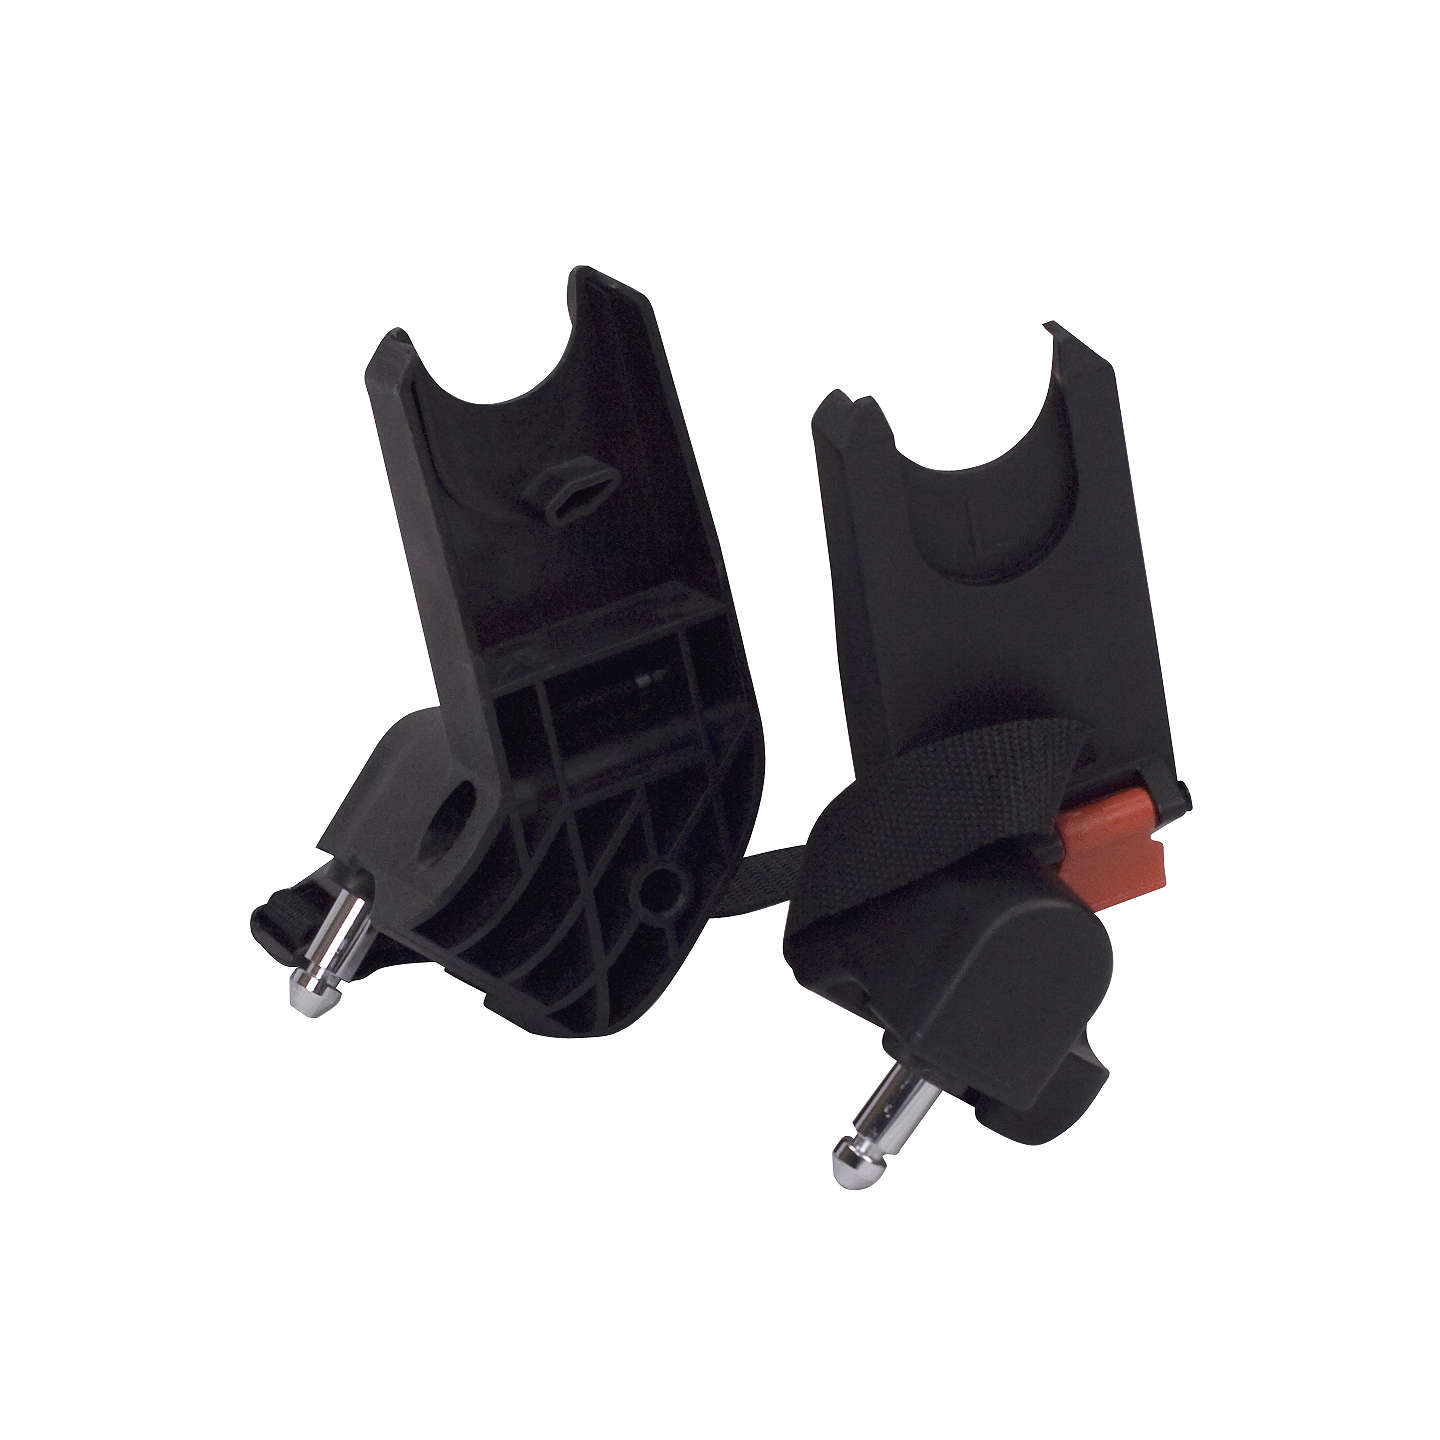 Maxi Cosi Car Seat Adapter For City Mini